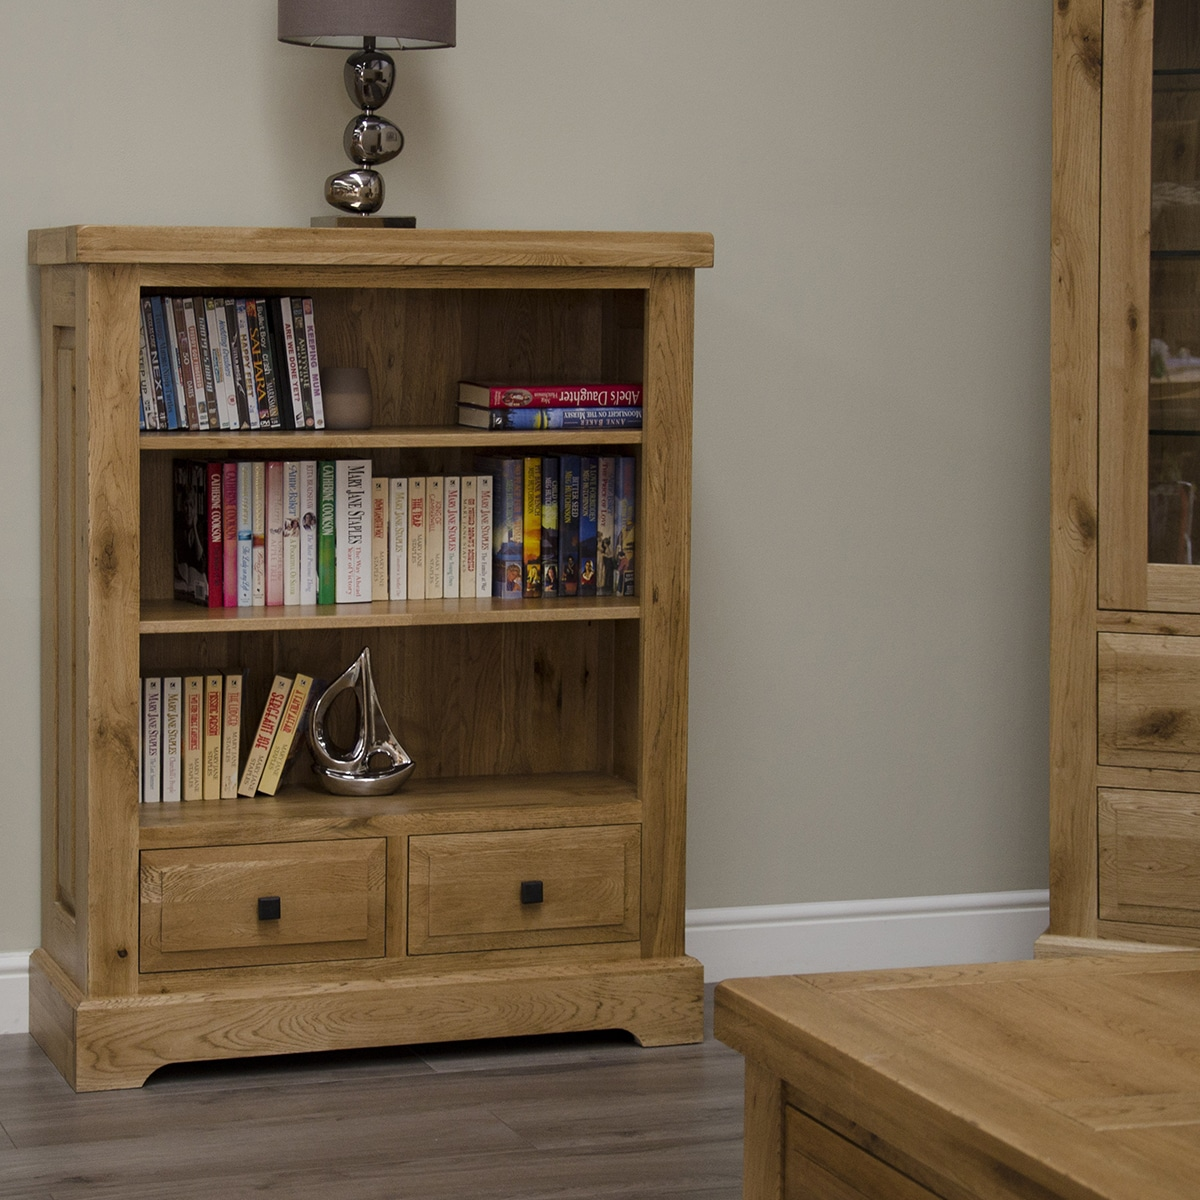 Wessex 100% Solid Oak Small Bookcase - WSXSBC